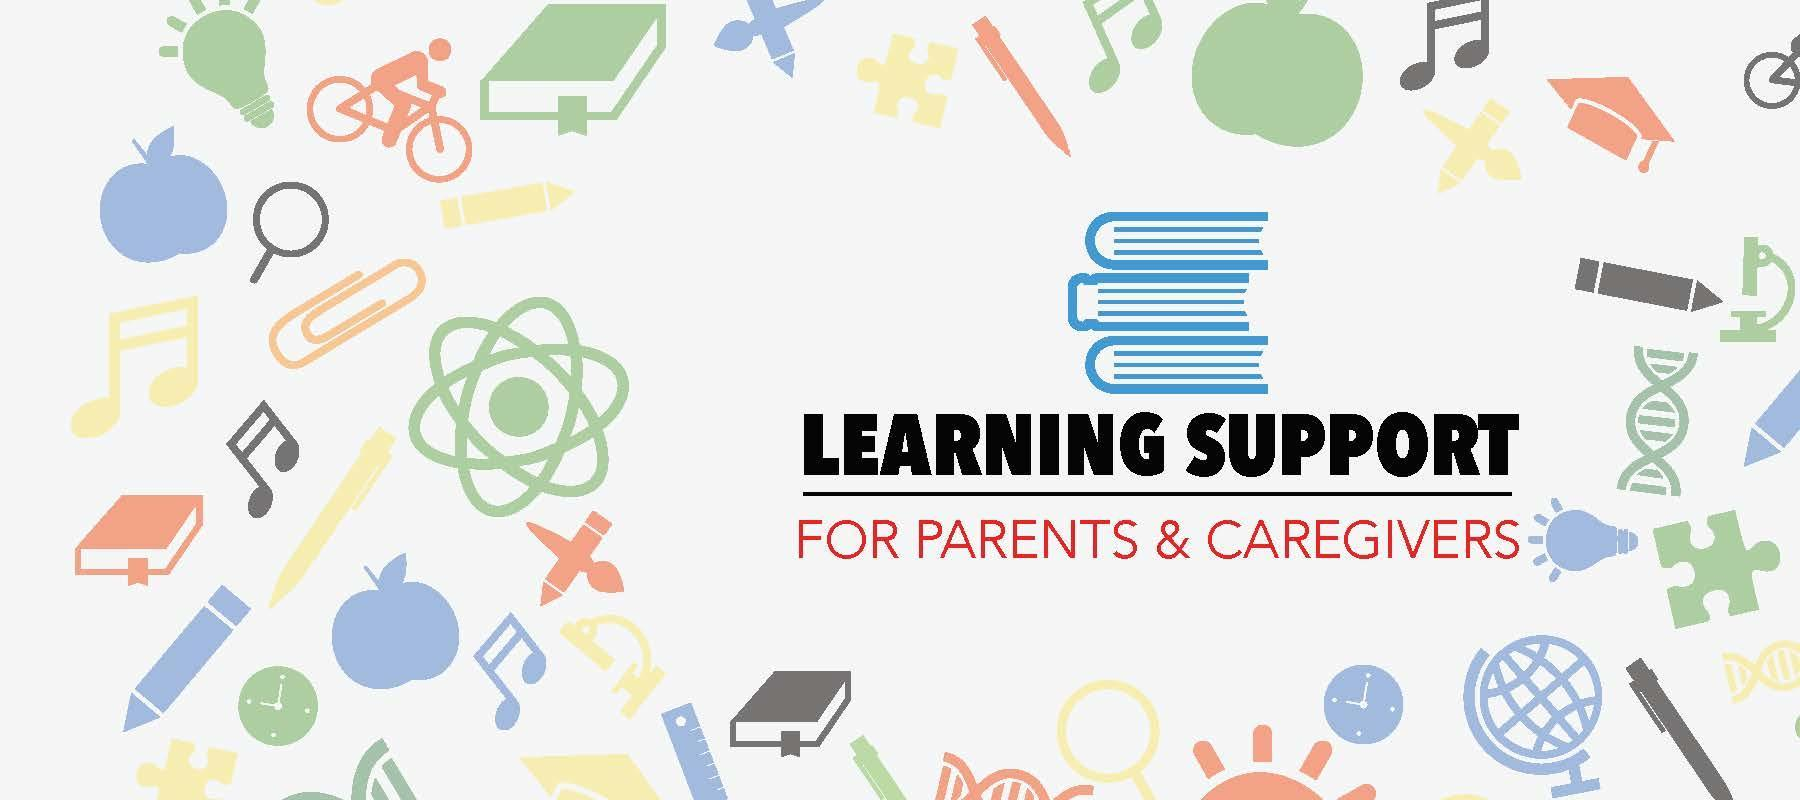 Learning Support for Parents